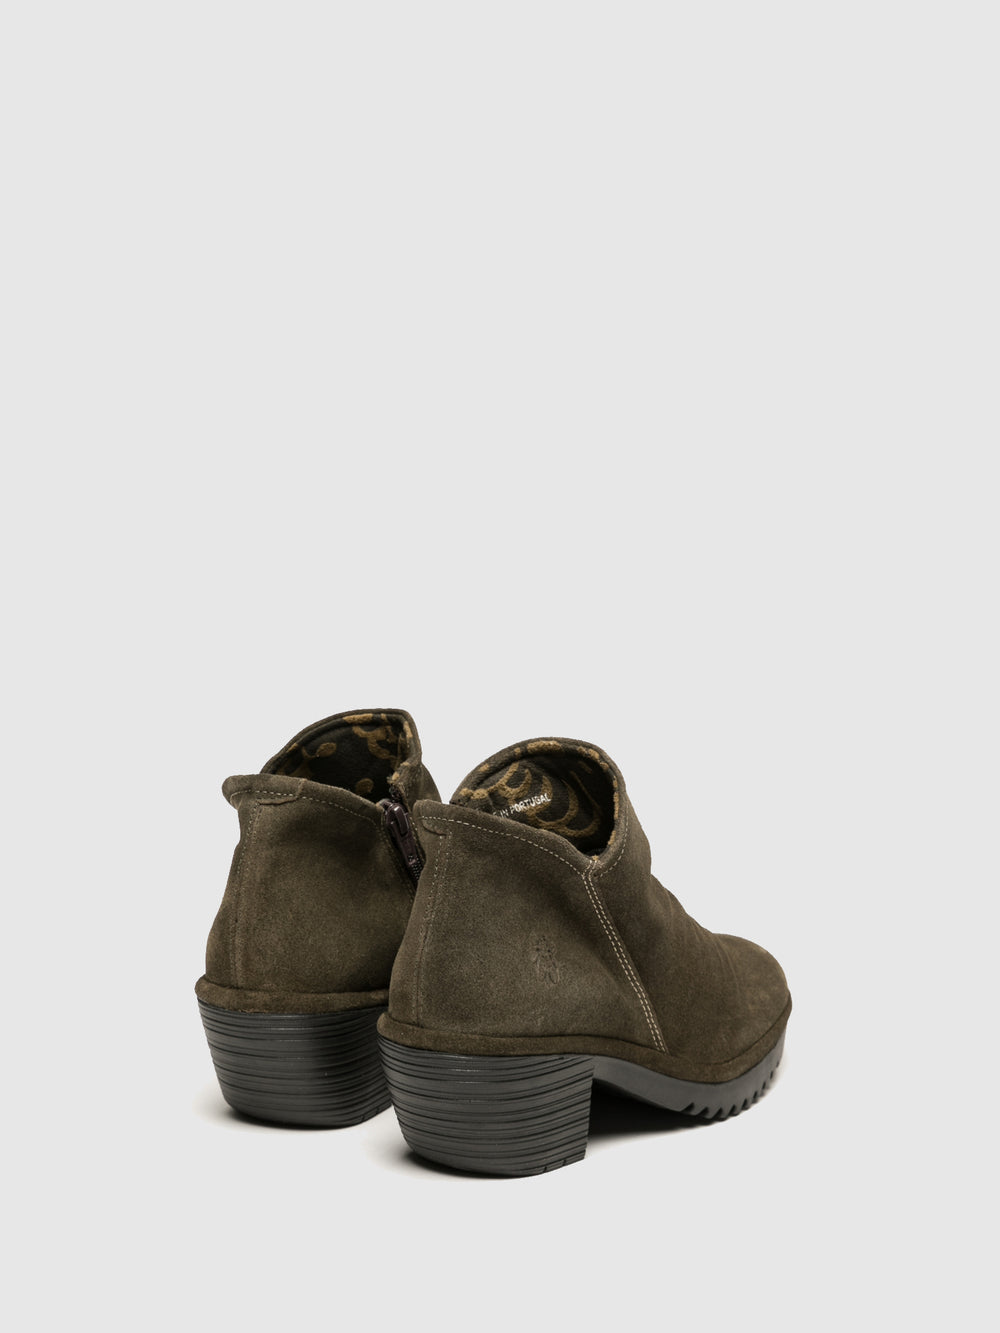 Zip Up Ankle Boots WEZO890FLY SLUDGE